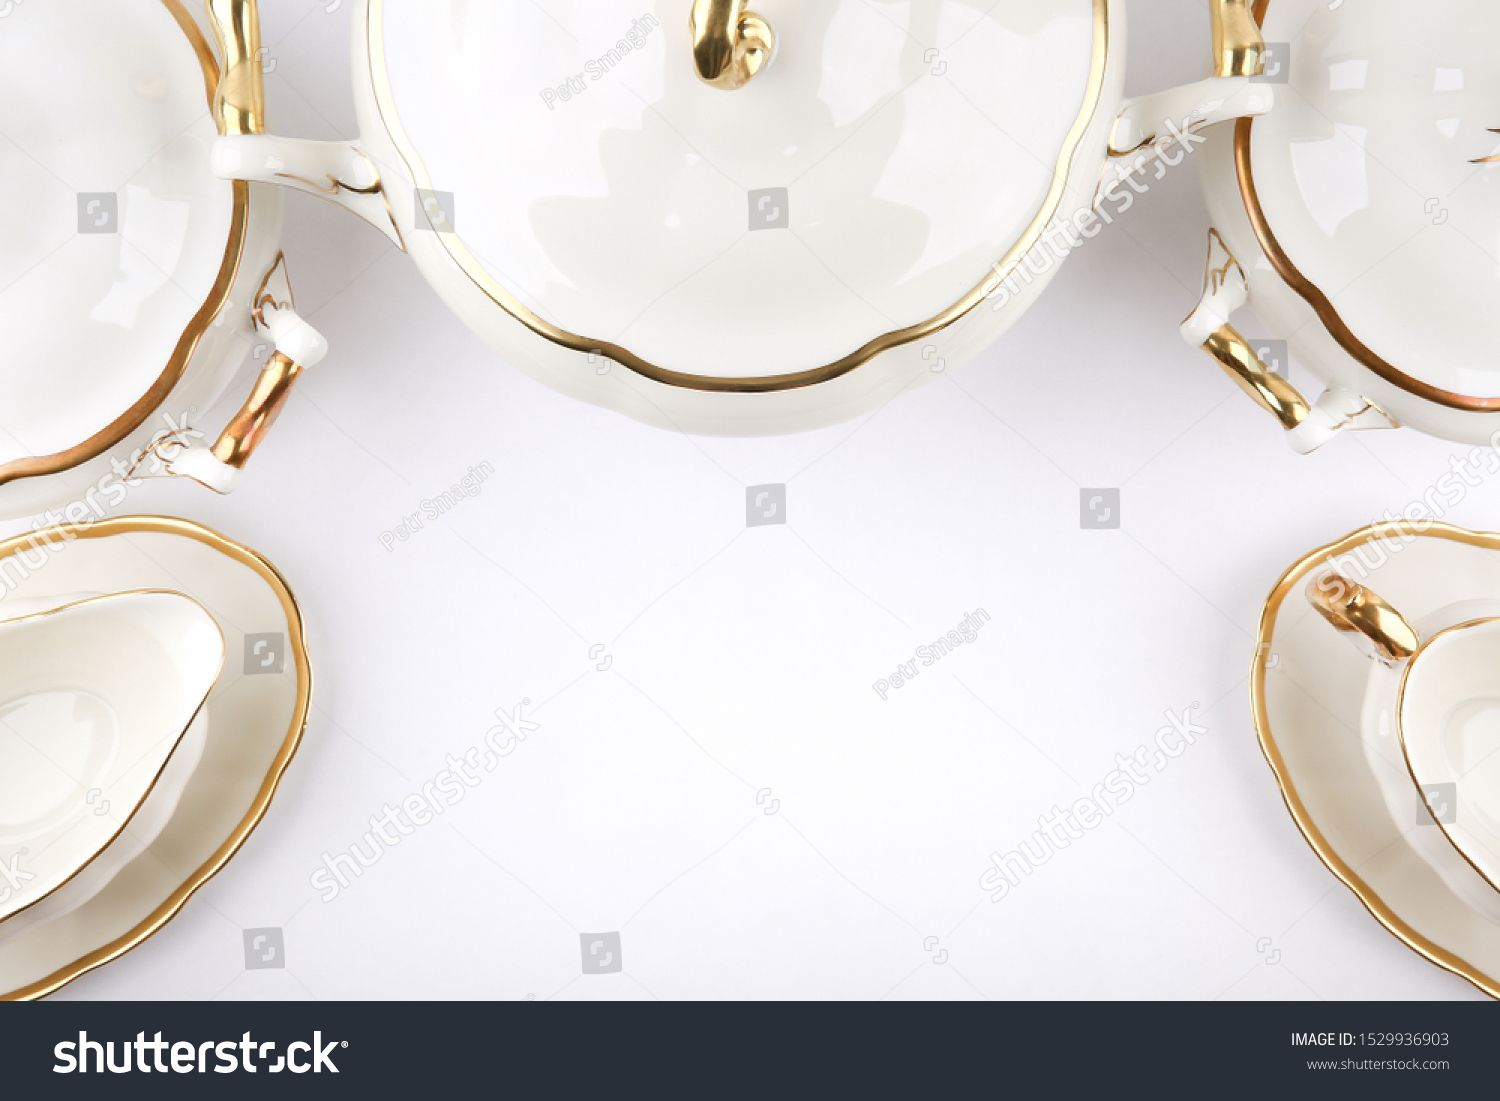 vintage ceramic tureens and gravy boats with gilding on a white background with copy space top view